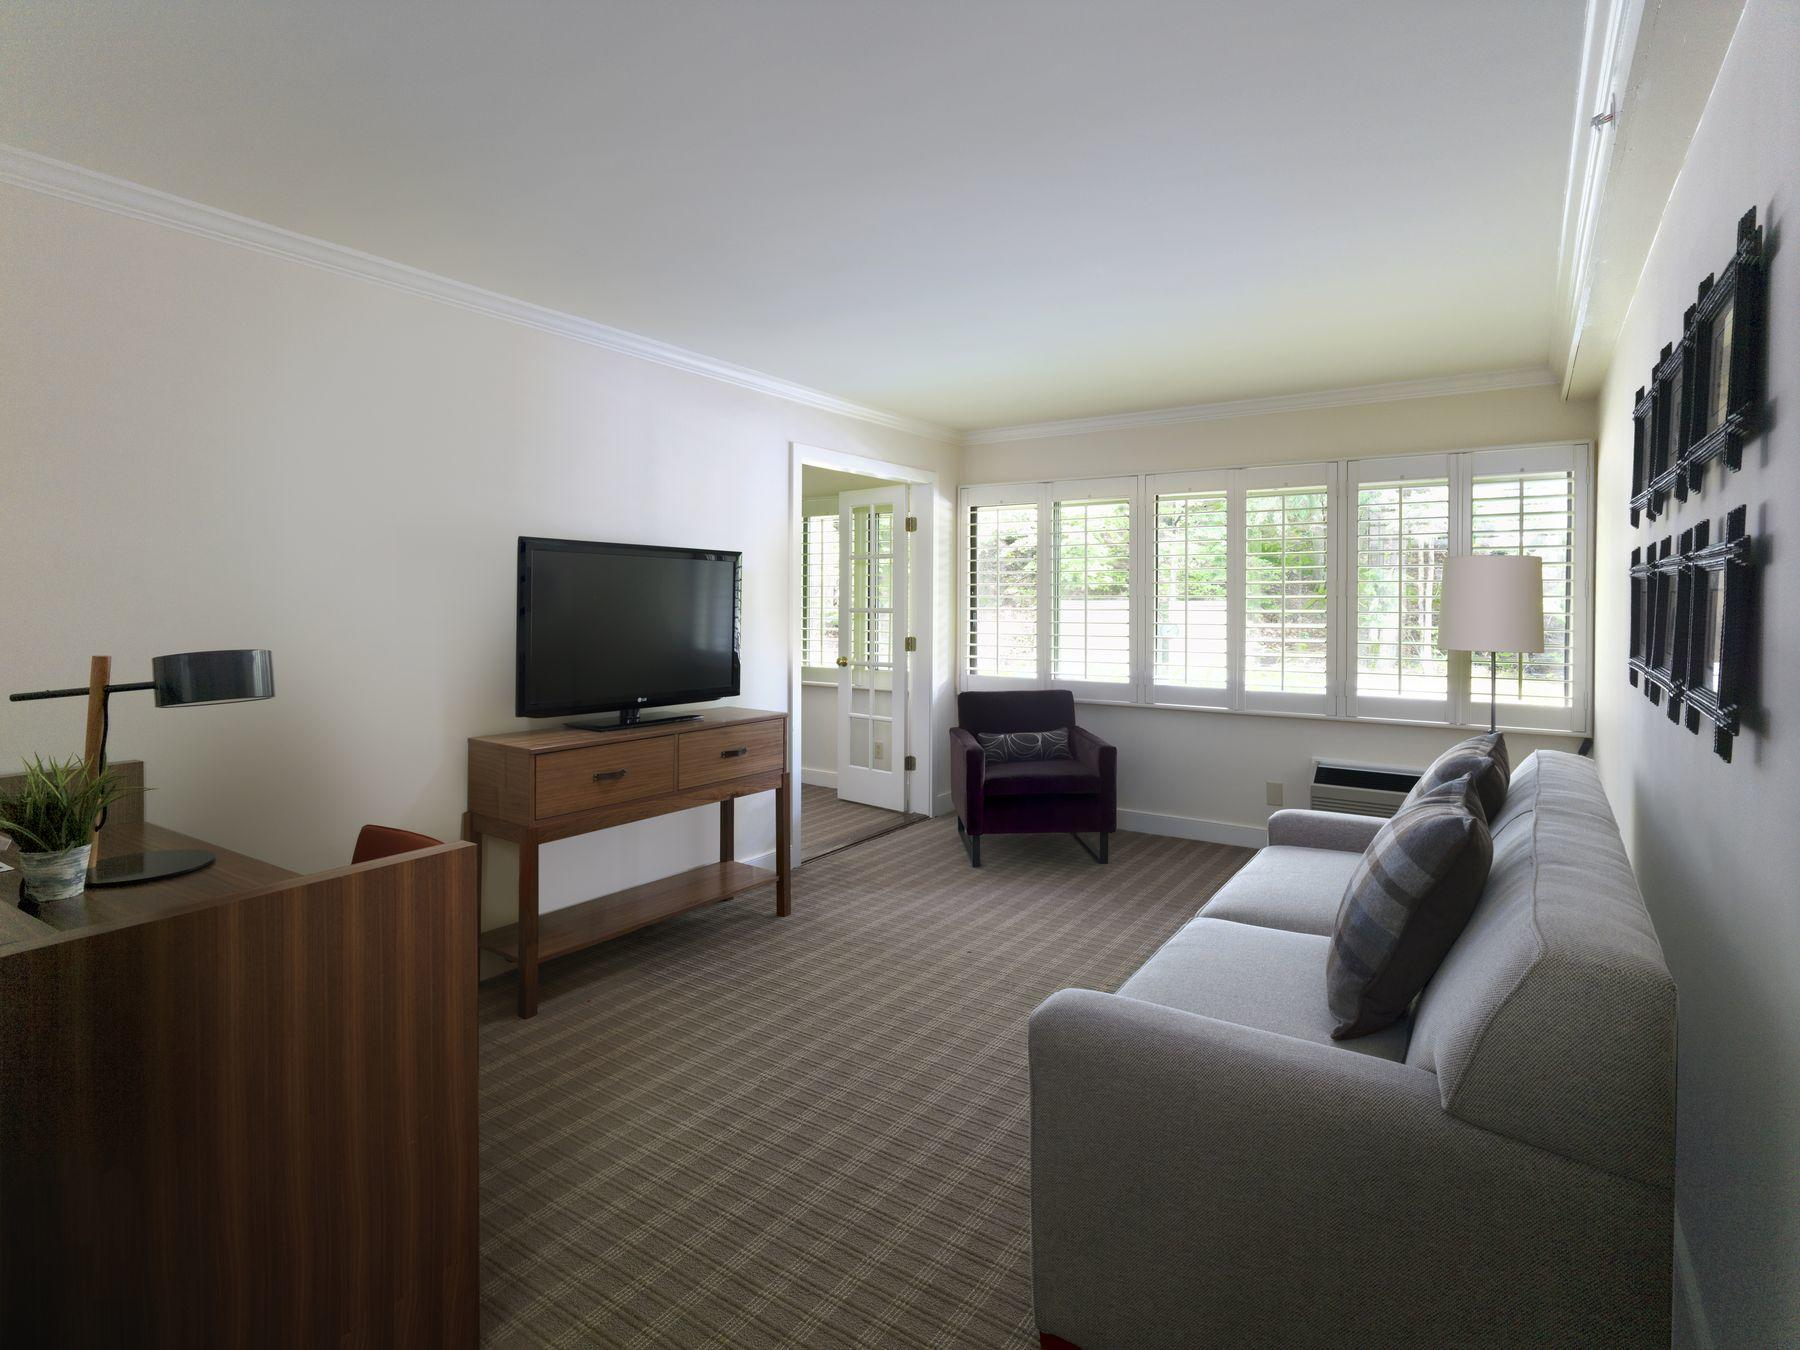 Broad living space of hotel suite with couch and tv.